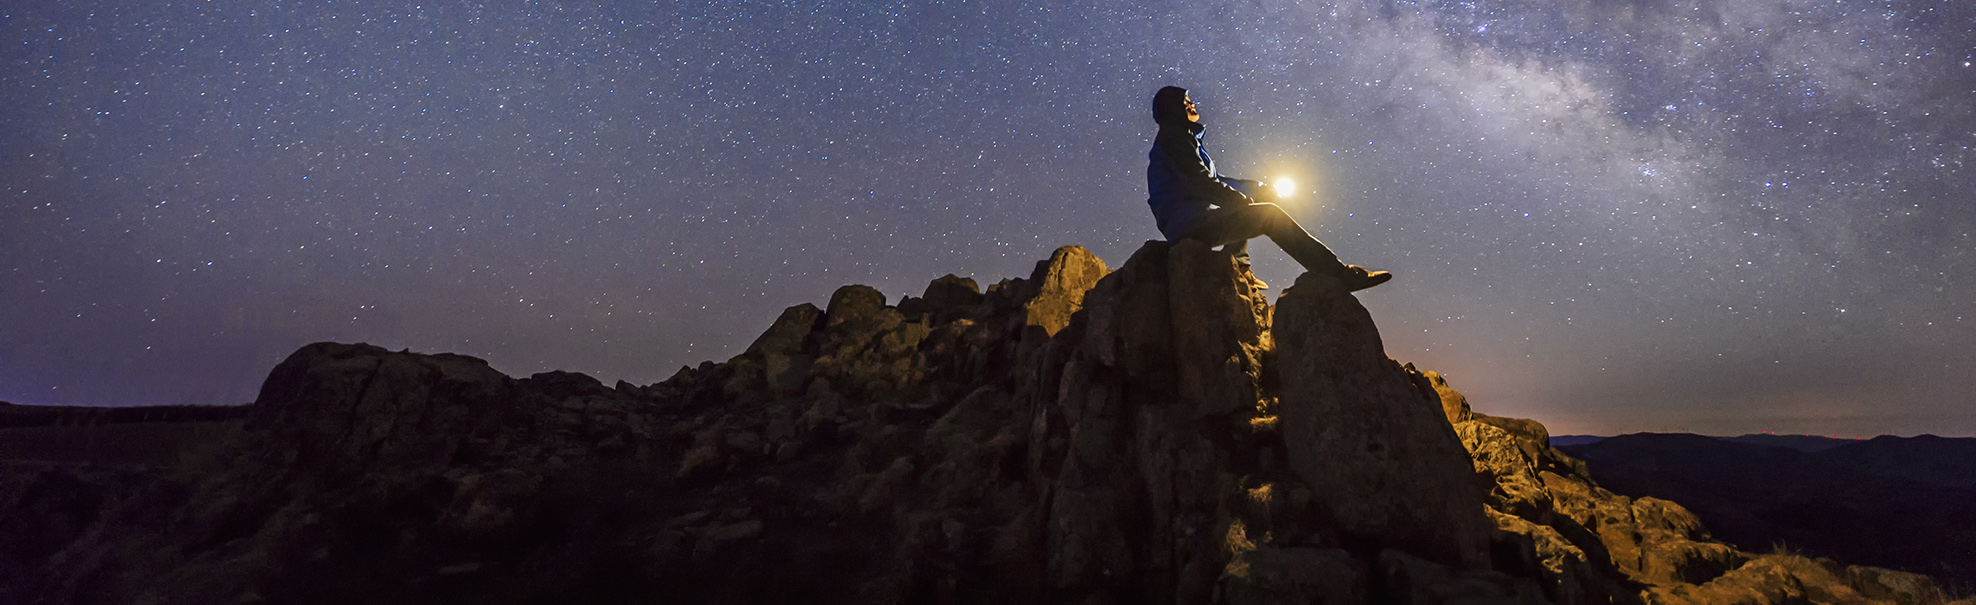 Man sitting under The Milky Way Galaxy with light on his hands. - Who Are You by Jerald Simon - published by Music Motivation